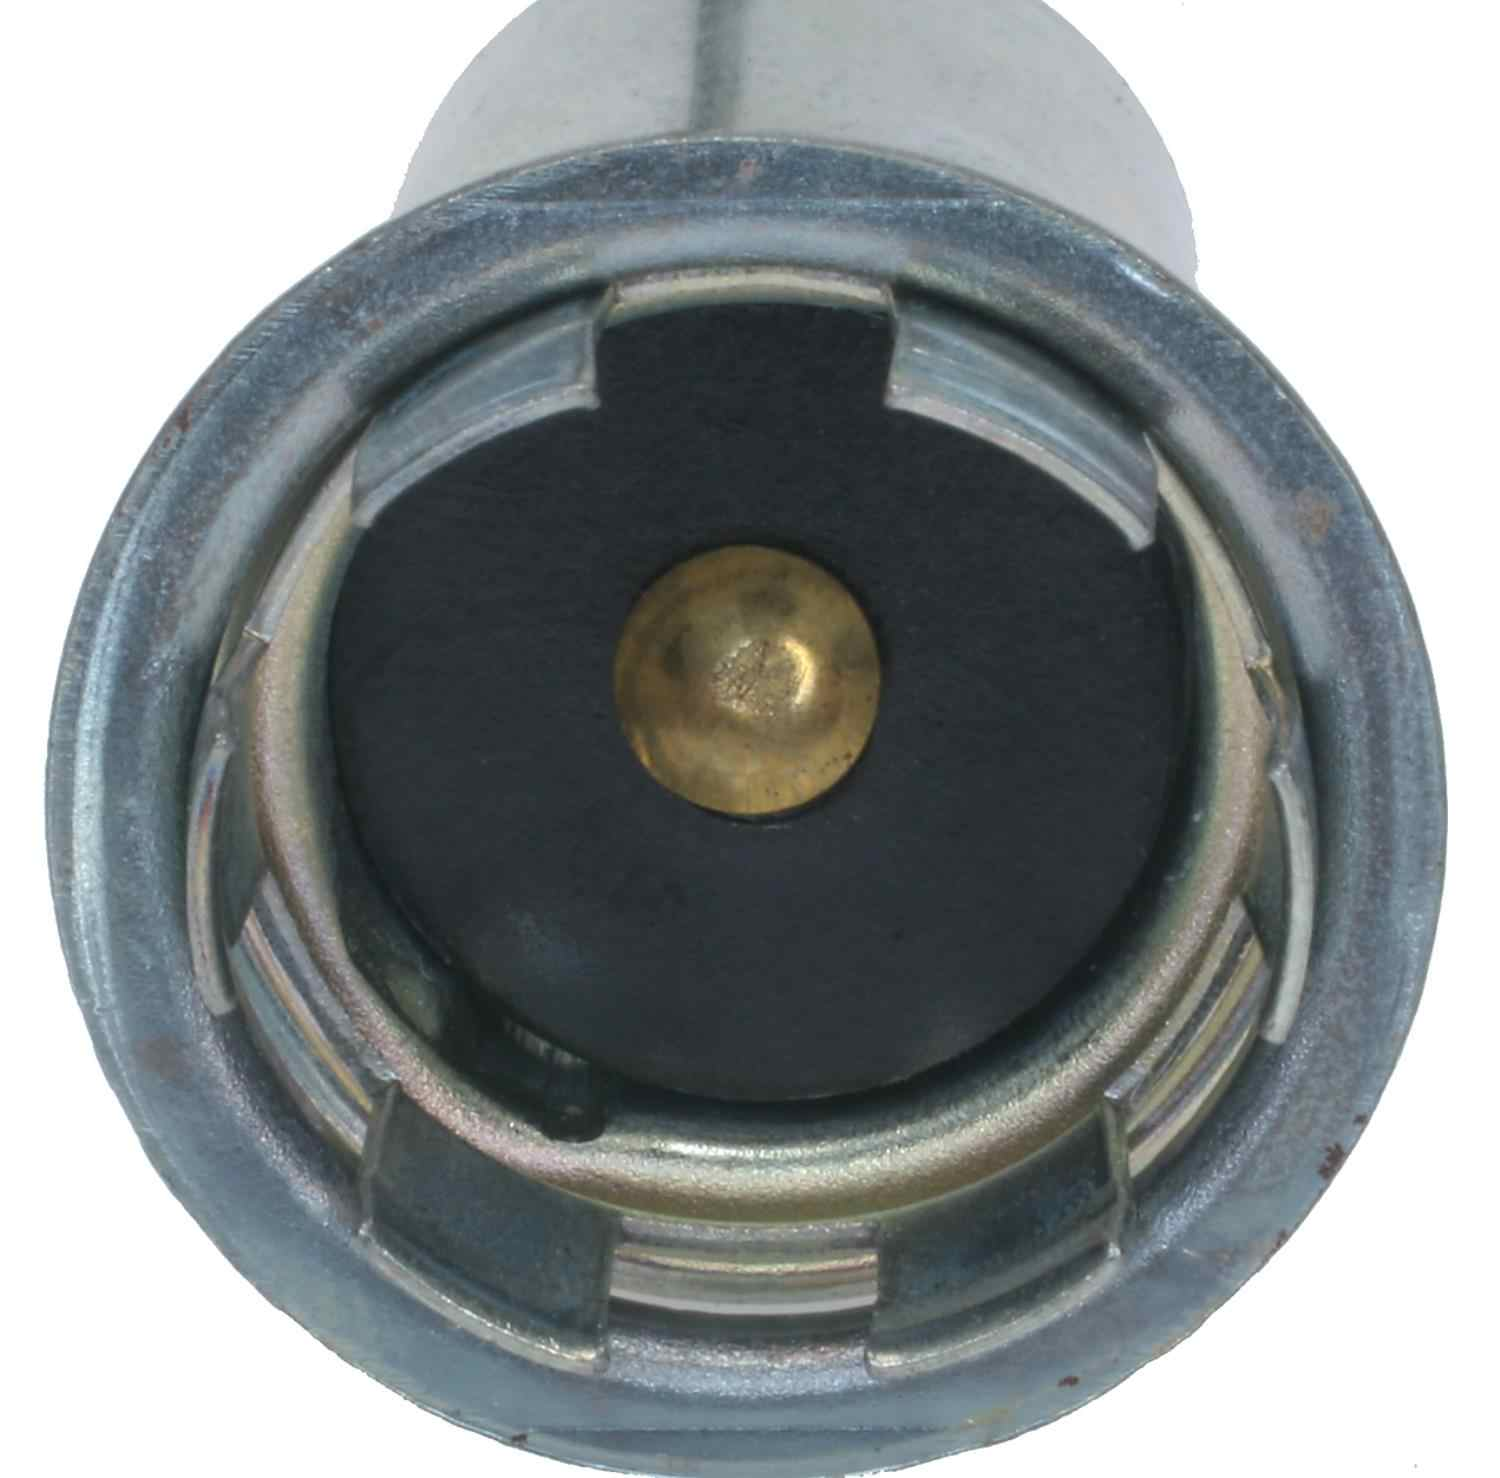 ACDELCO PROFESSIONAL - License Plate Light Socket - DCC LS281